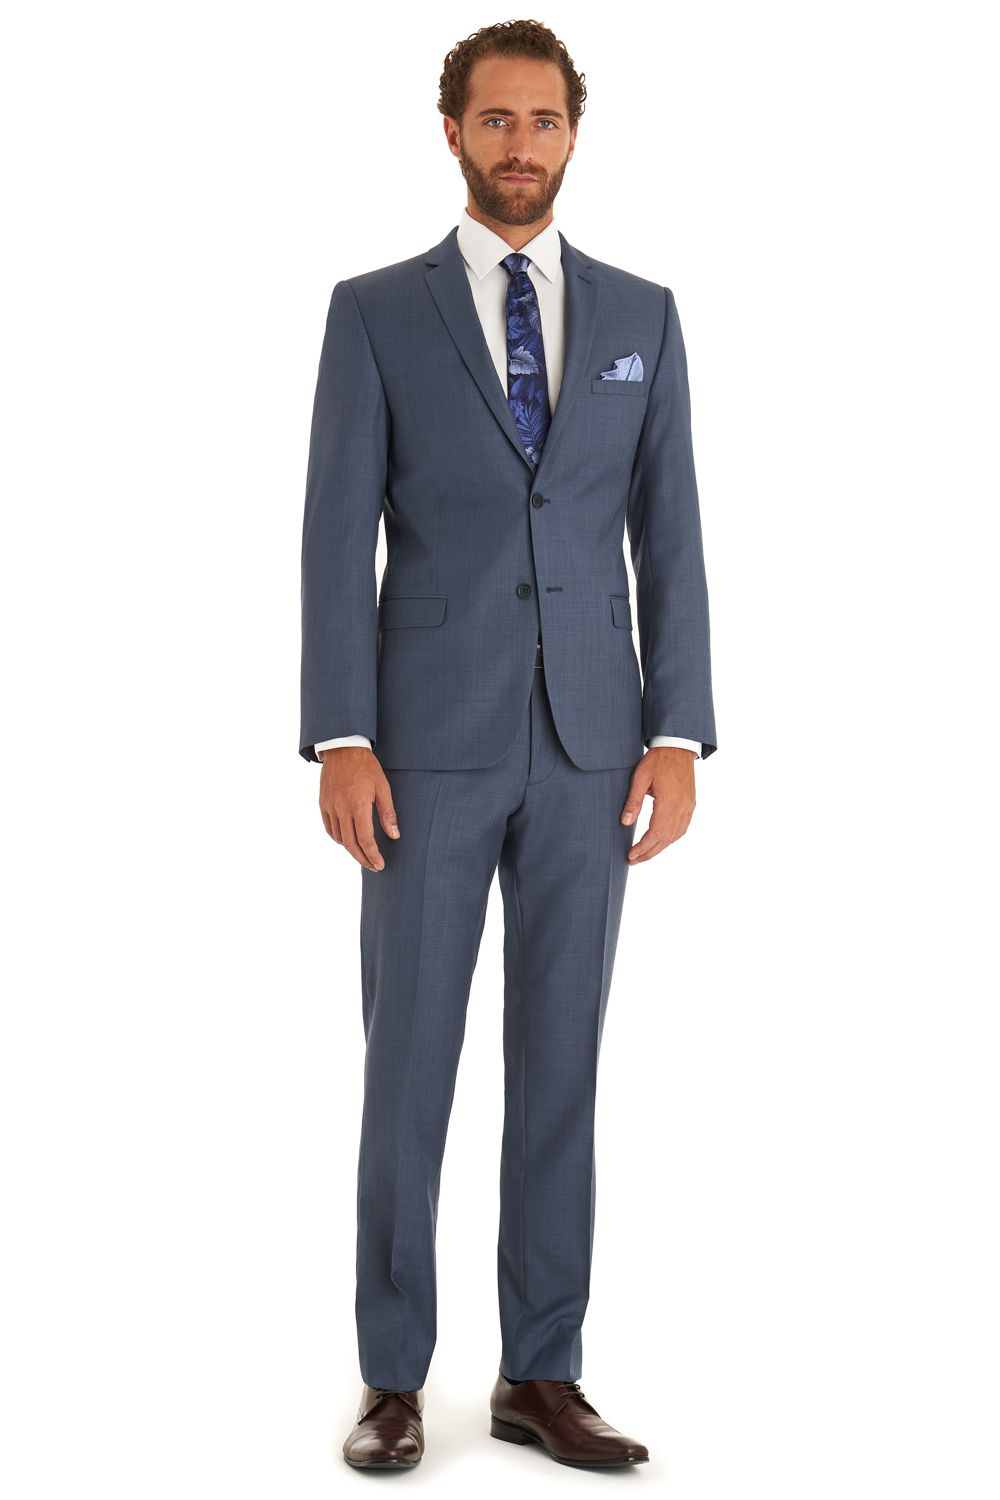 Ted baker endurance duckegg suit is single breasted with a notch